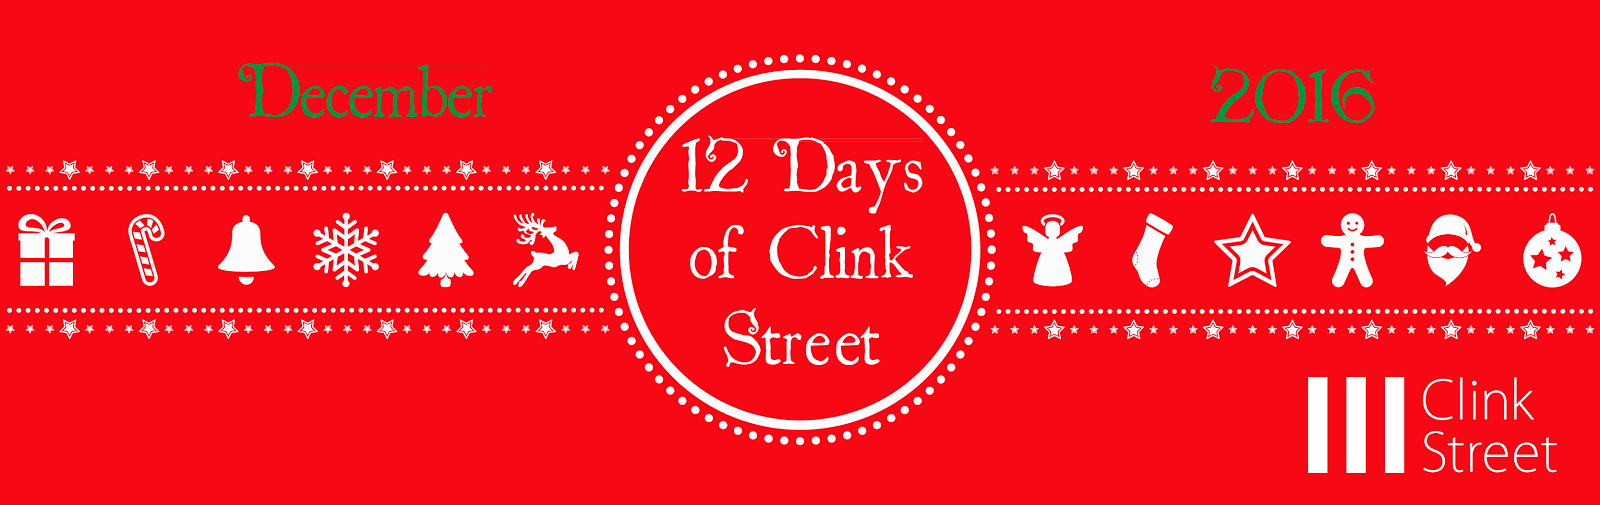 COMING SOON ~ 12 DAYS OF CLINK STREET CHRISTMAS